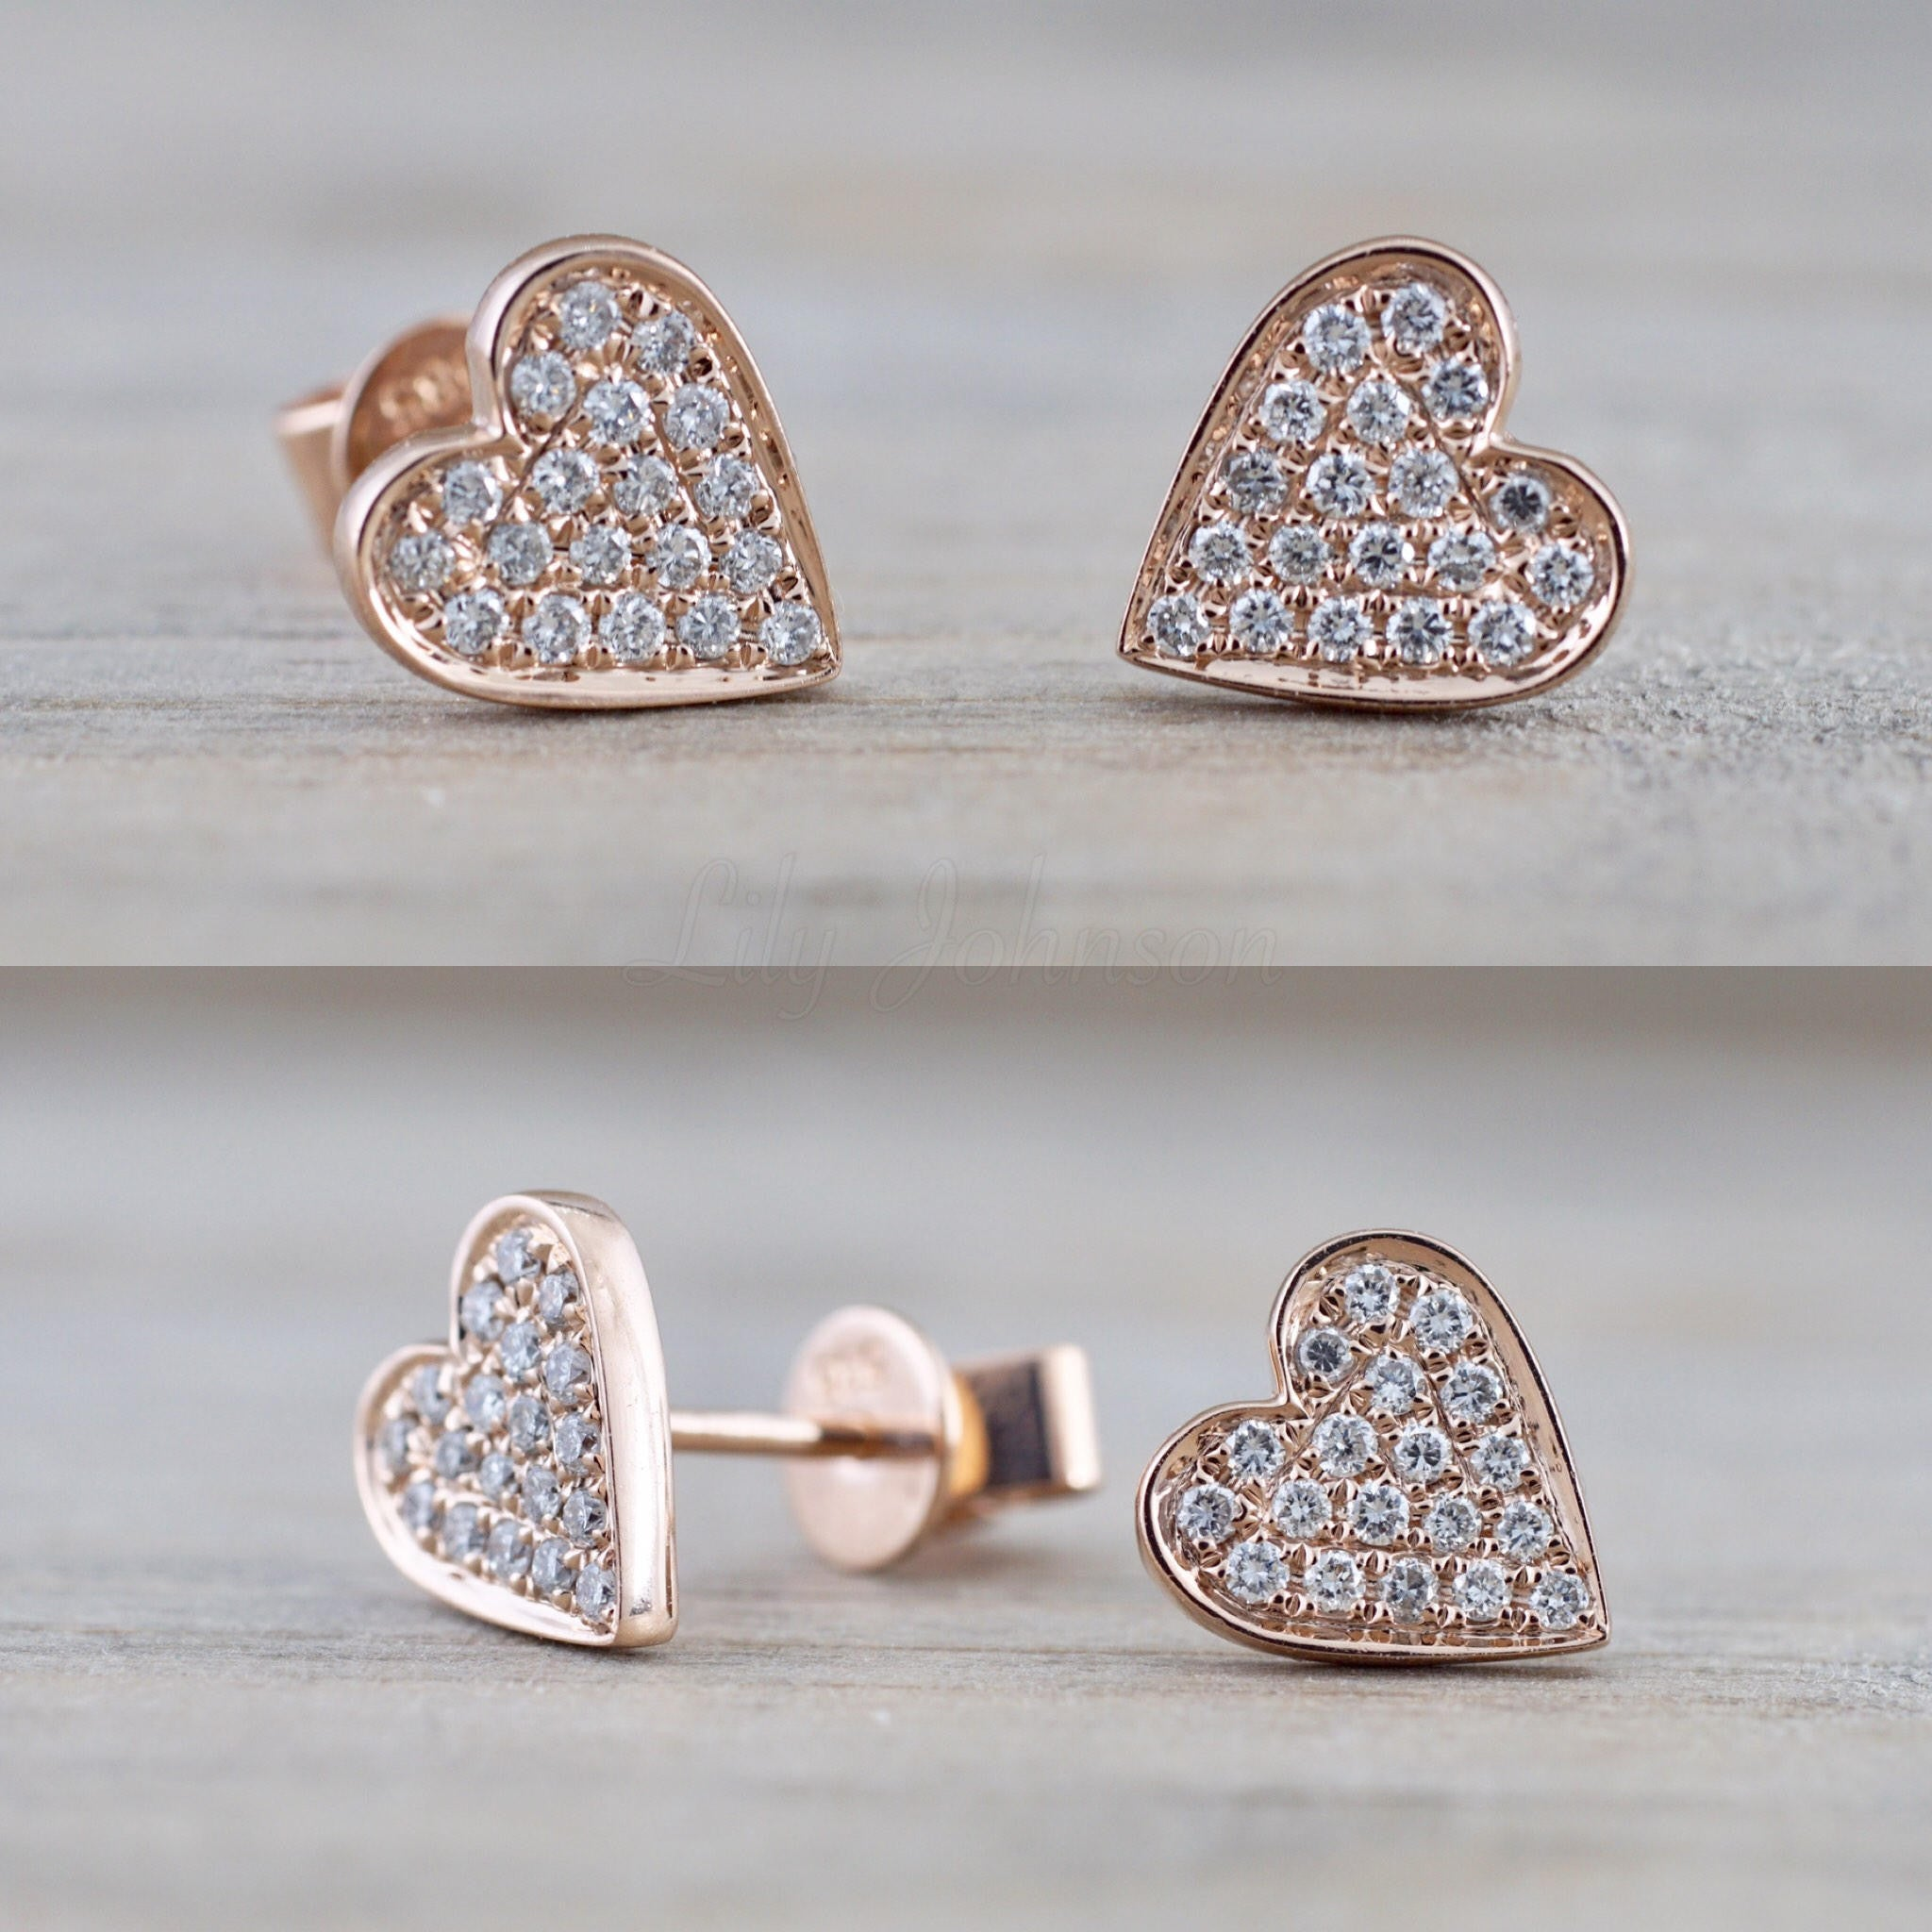 14k Rose Gold Disk Design Heart Diamond Earrings Stud Post Studs Round Micro Pave Flat - Brilliant Facets